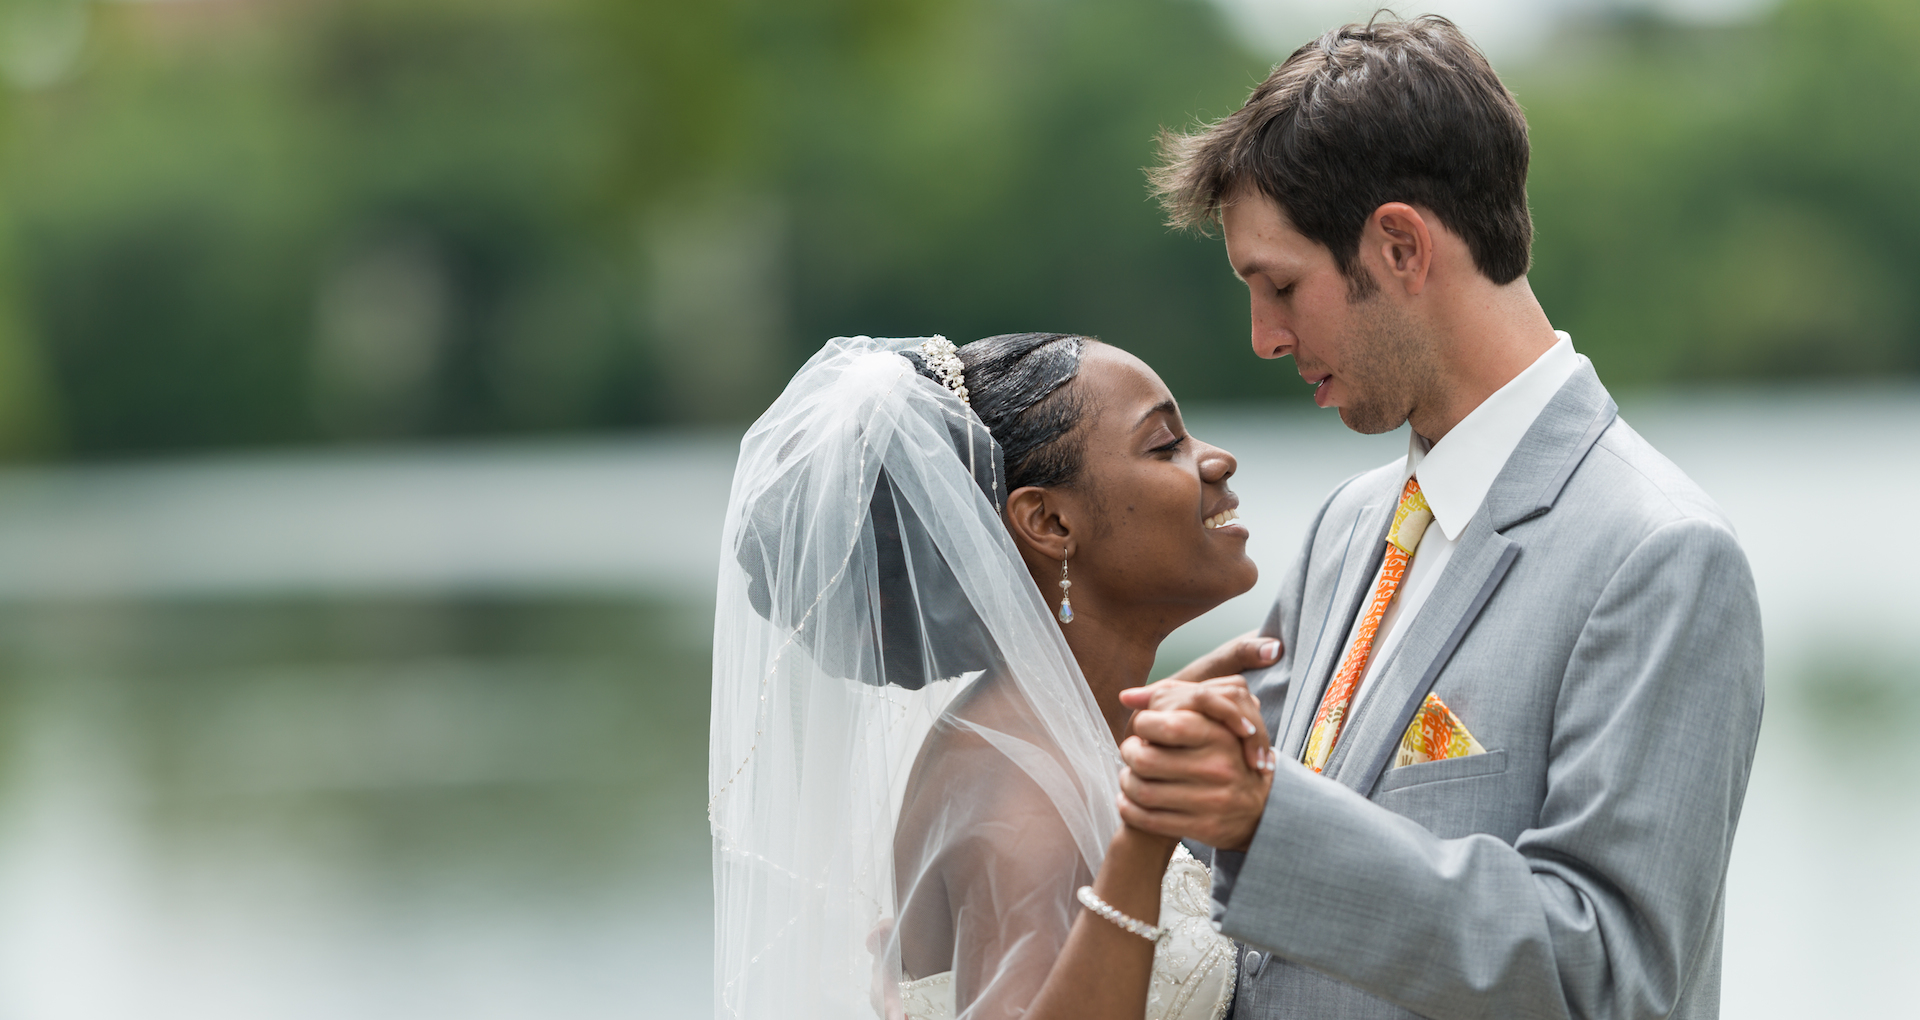 Wedding Insurance What S Covered Who Sells It And Prices Nerdwallet